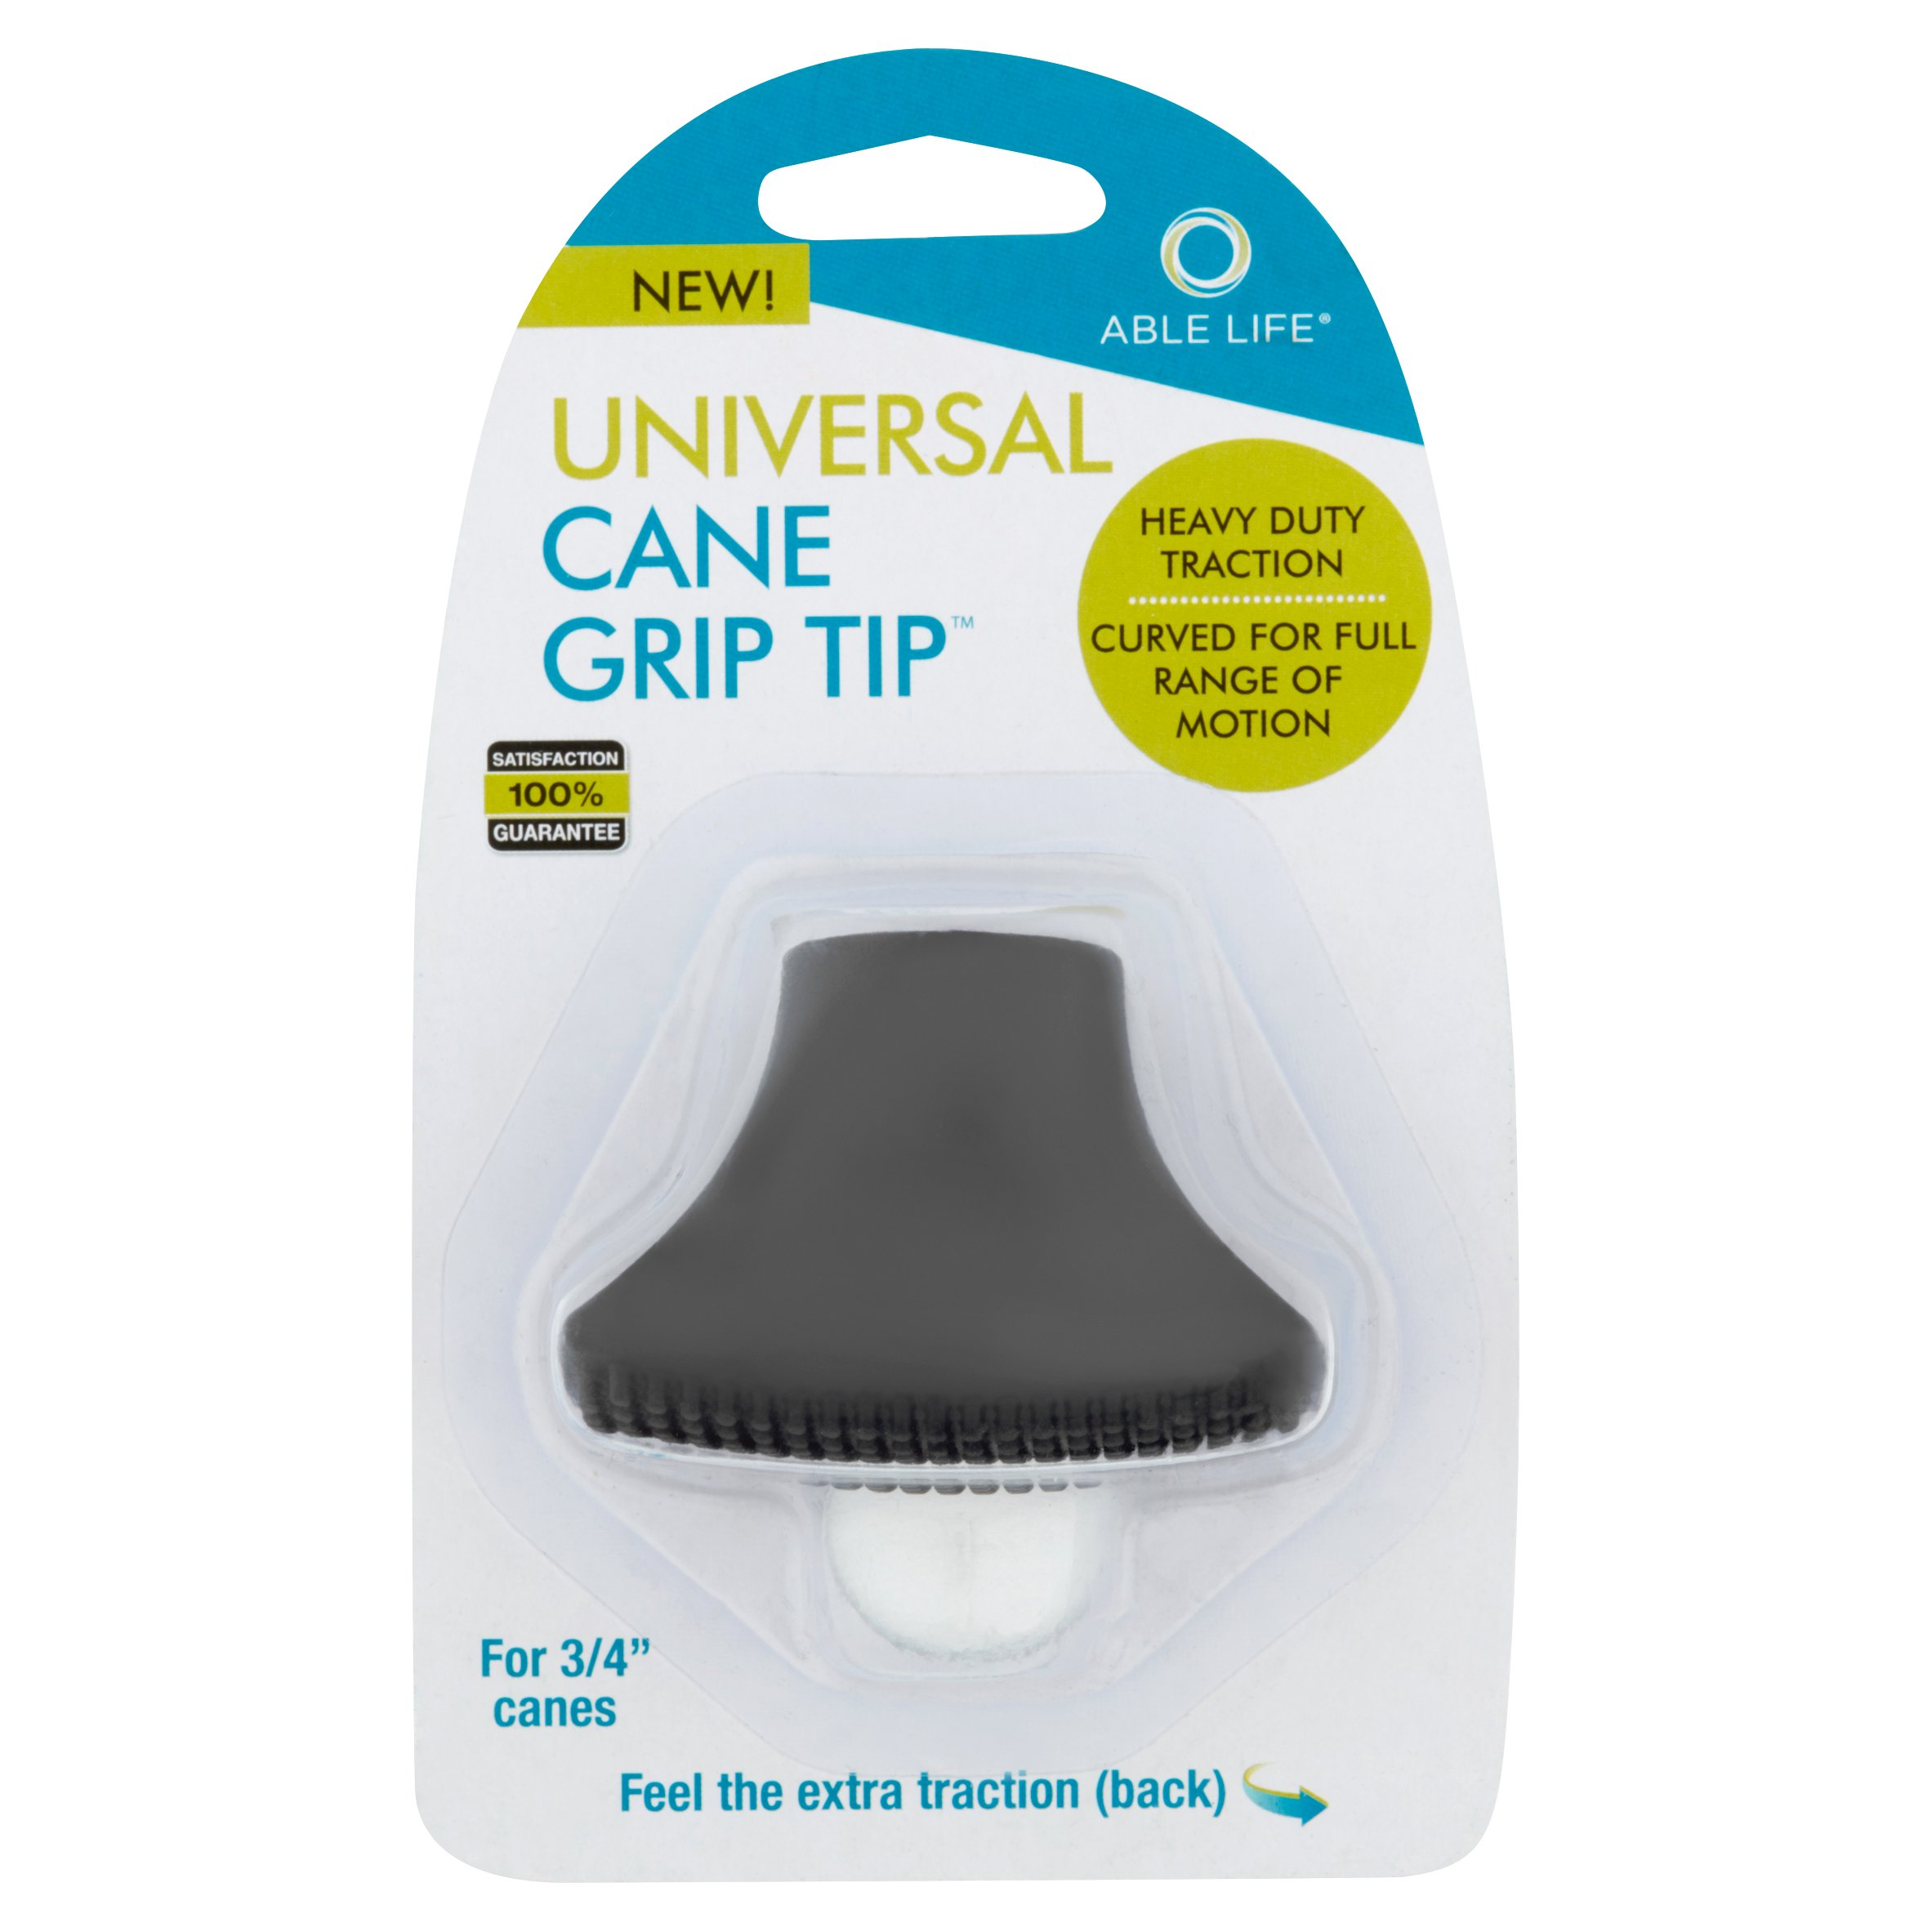 Able Life Universal Cane Grip Tip